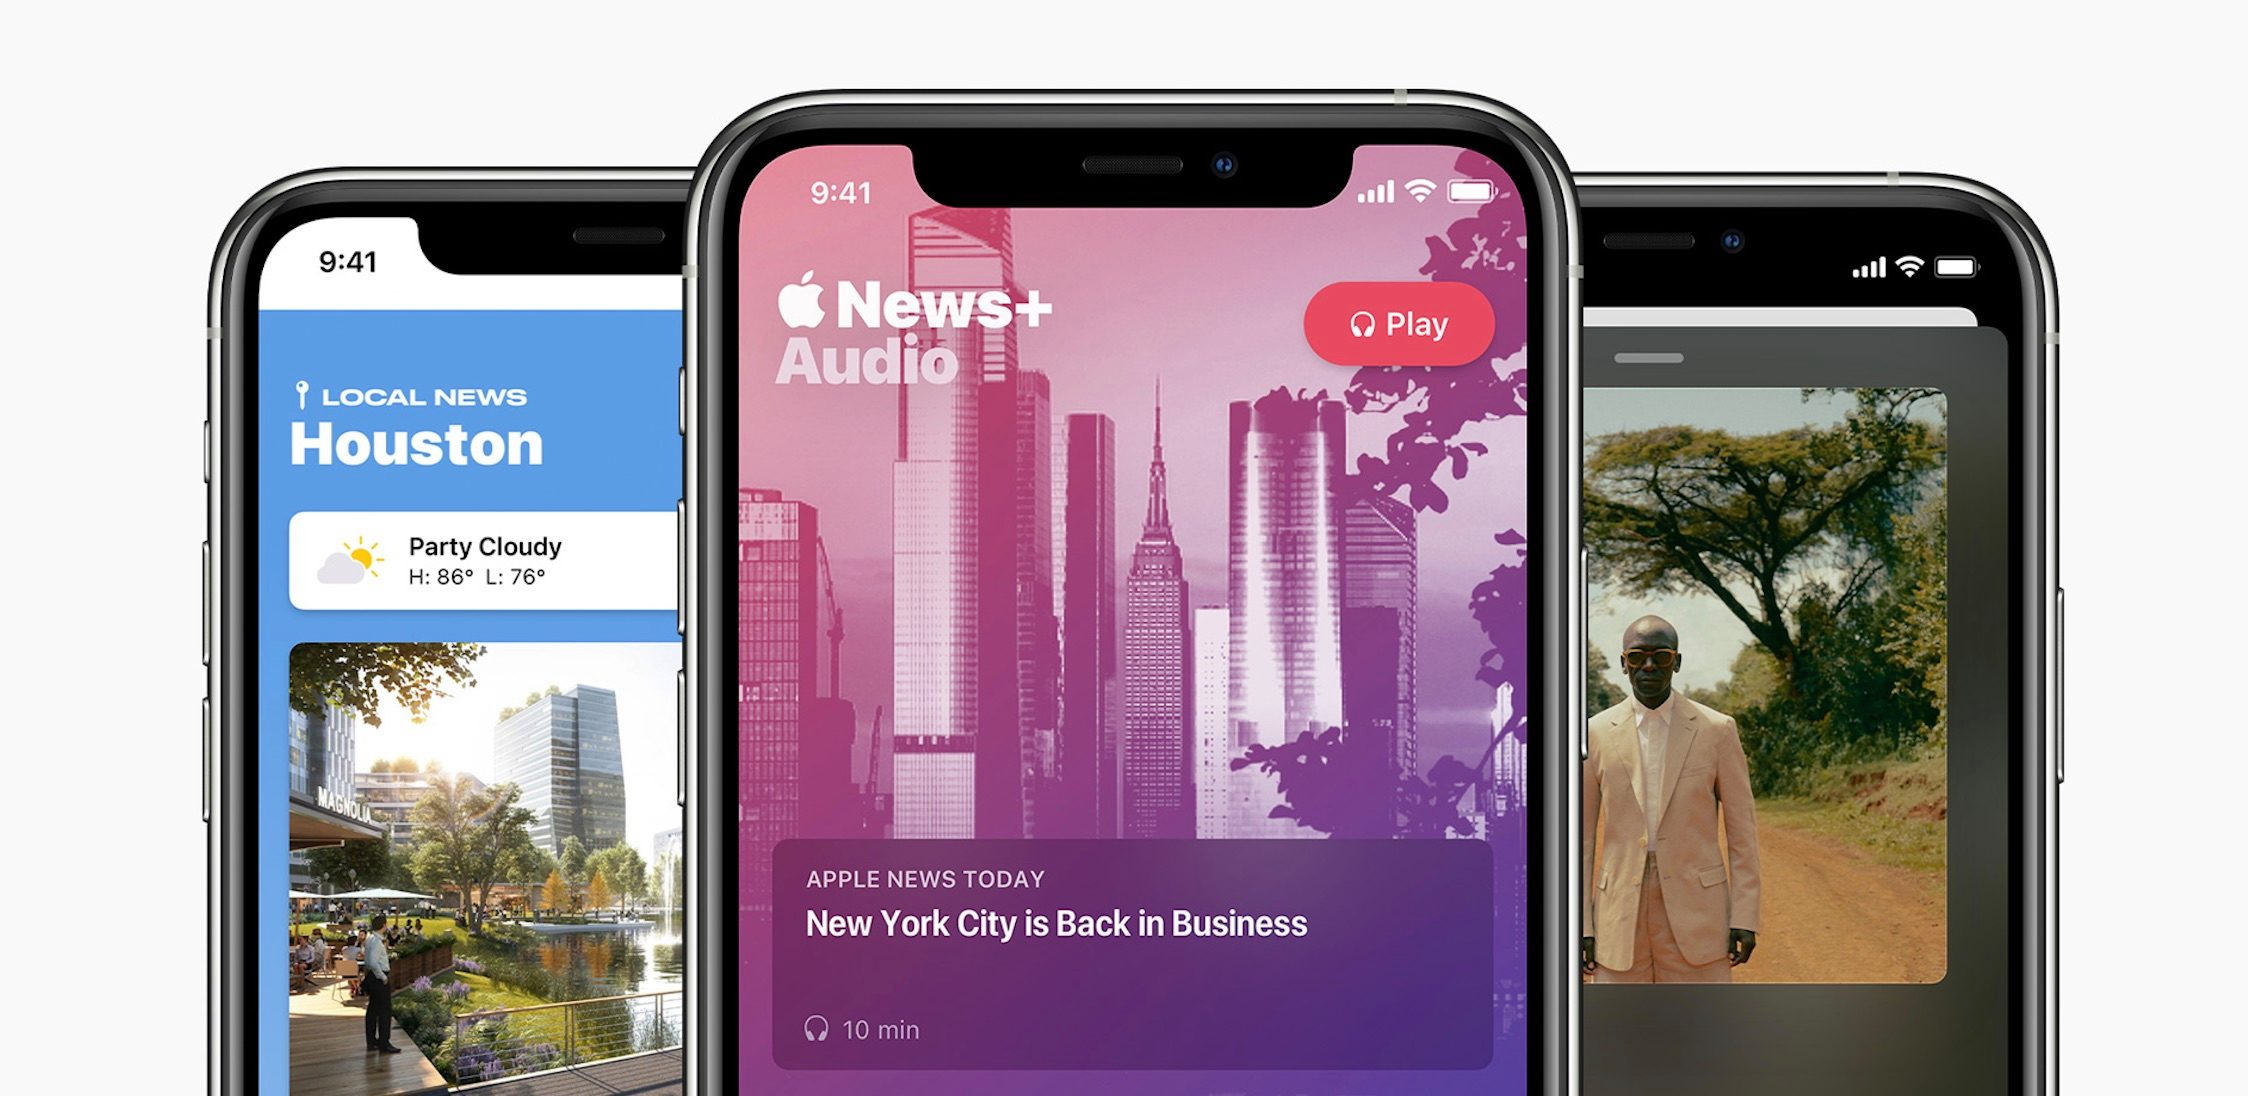 Apple releasing iOS 13.6 currently with Apple Information+ Audio, Automobile Key feature, much more